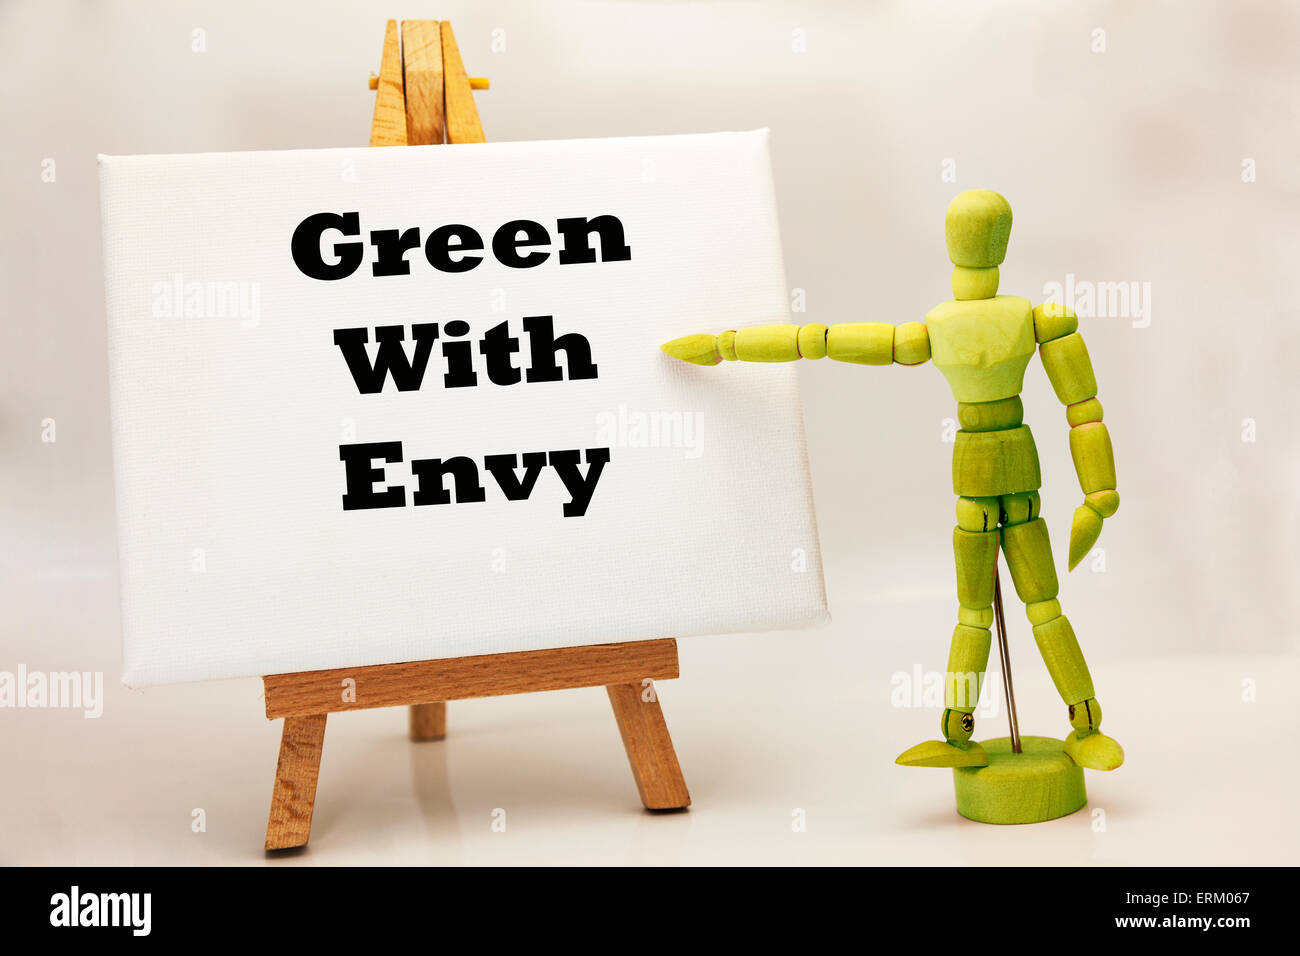 Wooden man with white board pointing at words 'Green with envy' jealous jealousy envious wanting wants - Stock Image